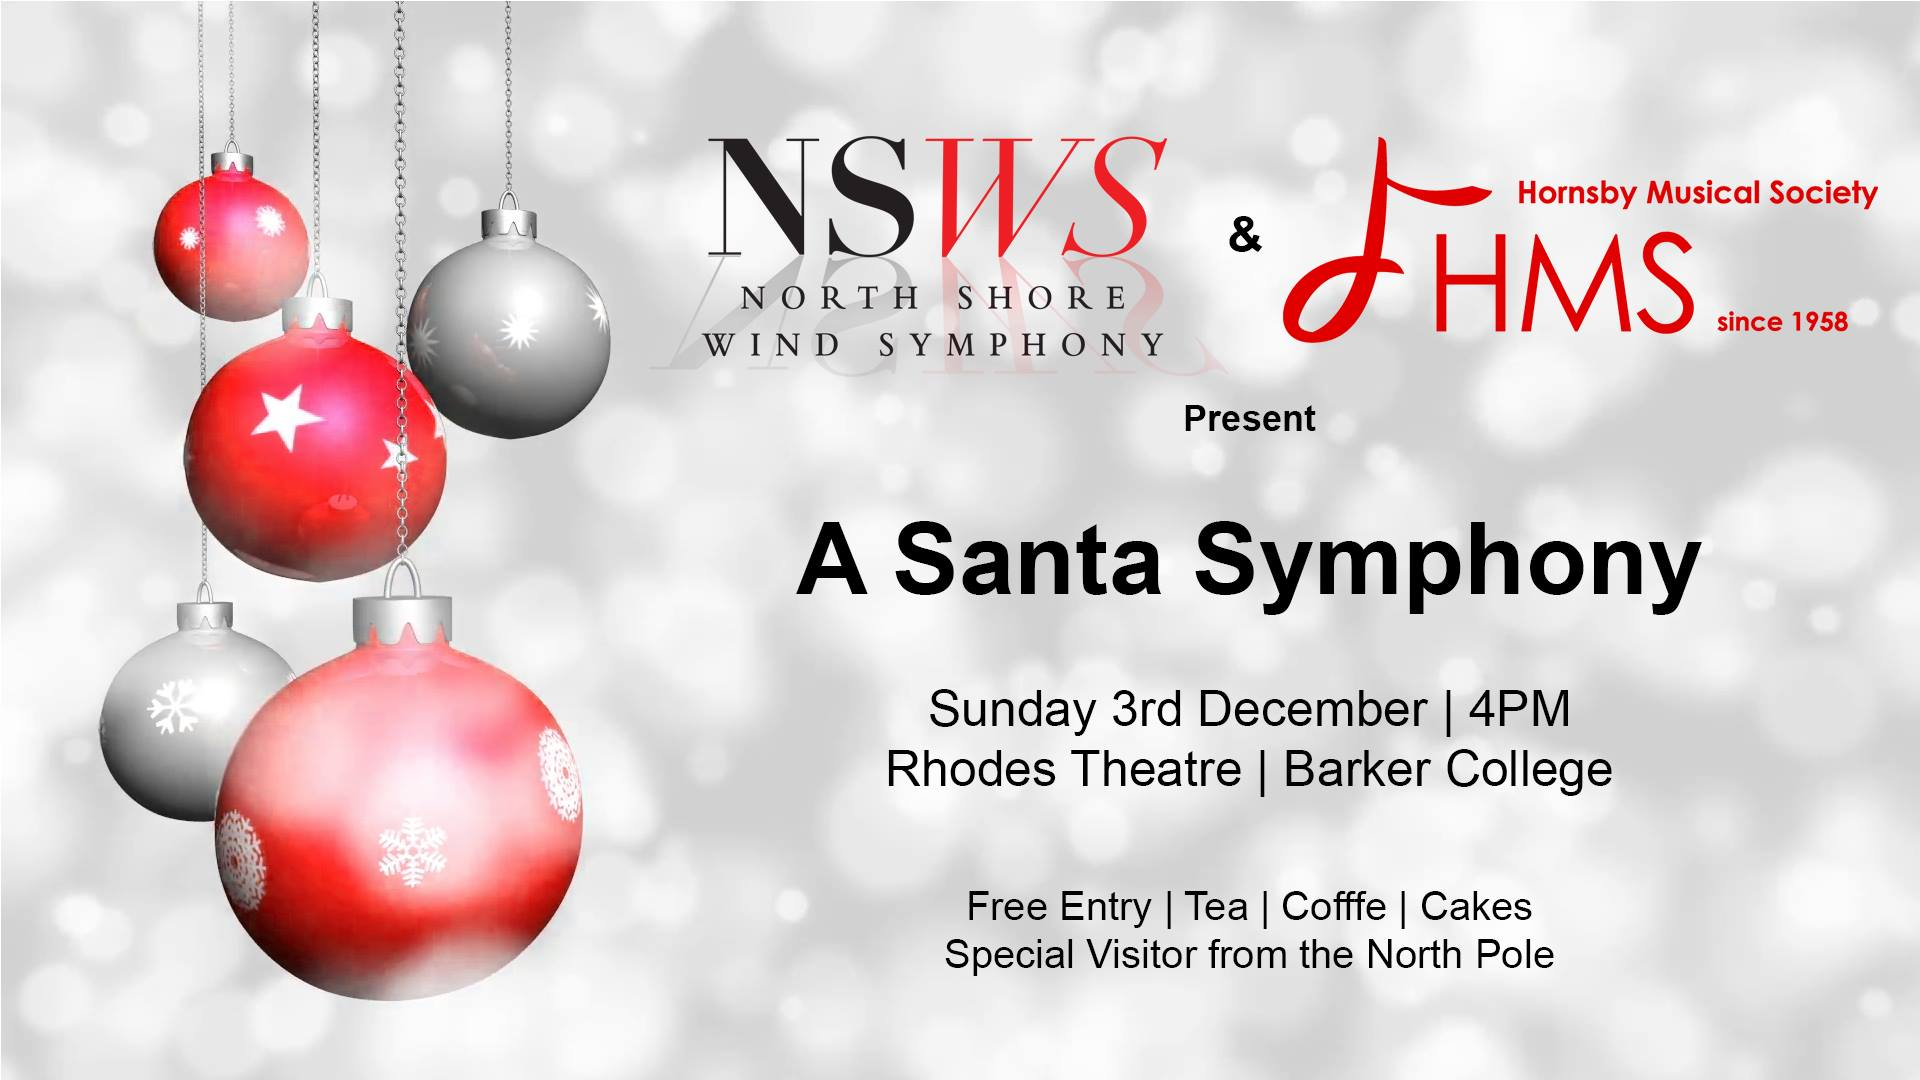 A santa symphony - SUNDAY 3 DECEMBER 2017CHAMBER MUSIC:Sugar plums Dancing, Caspar Kummer (flute Ensemble)Suite Hellenique, Pedro Iturralde (Saxophone Ensemble)Sacred Suite: Sing To the lord, brendan collins (brass Ensemble)Molly on the shore, Percy grainger (Clarinet ensemble)frippery, traditional (Trombone ensemble)O holy night, traditional arr. buddy lovett (Percussion ensemble)CAROLS (with hornsby musical society)deck the hallso come all ye faithfulAngels we have heard on highhark the herald angels singrudolph the red-nosed reindeerA CHRISTMAS FESTIVALleroy andersonsLEIGH RIDEleroy andersona MOST WONDERFUL CHRISTMASArr. Robert longfieldFESTIVE OVERTUREDmitri Shostakovich, arr. donald hunsberger